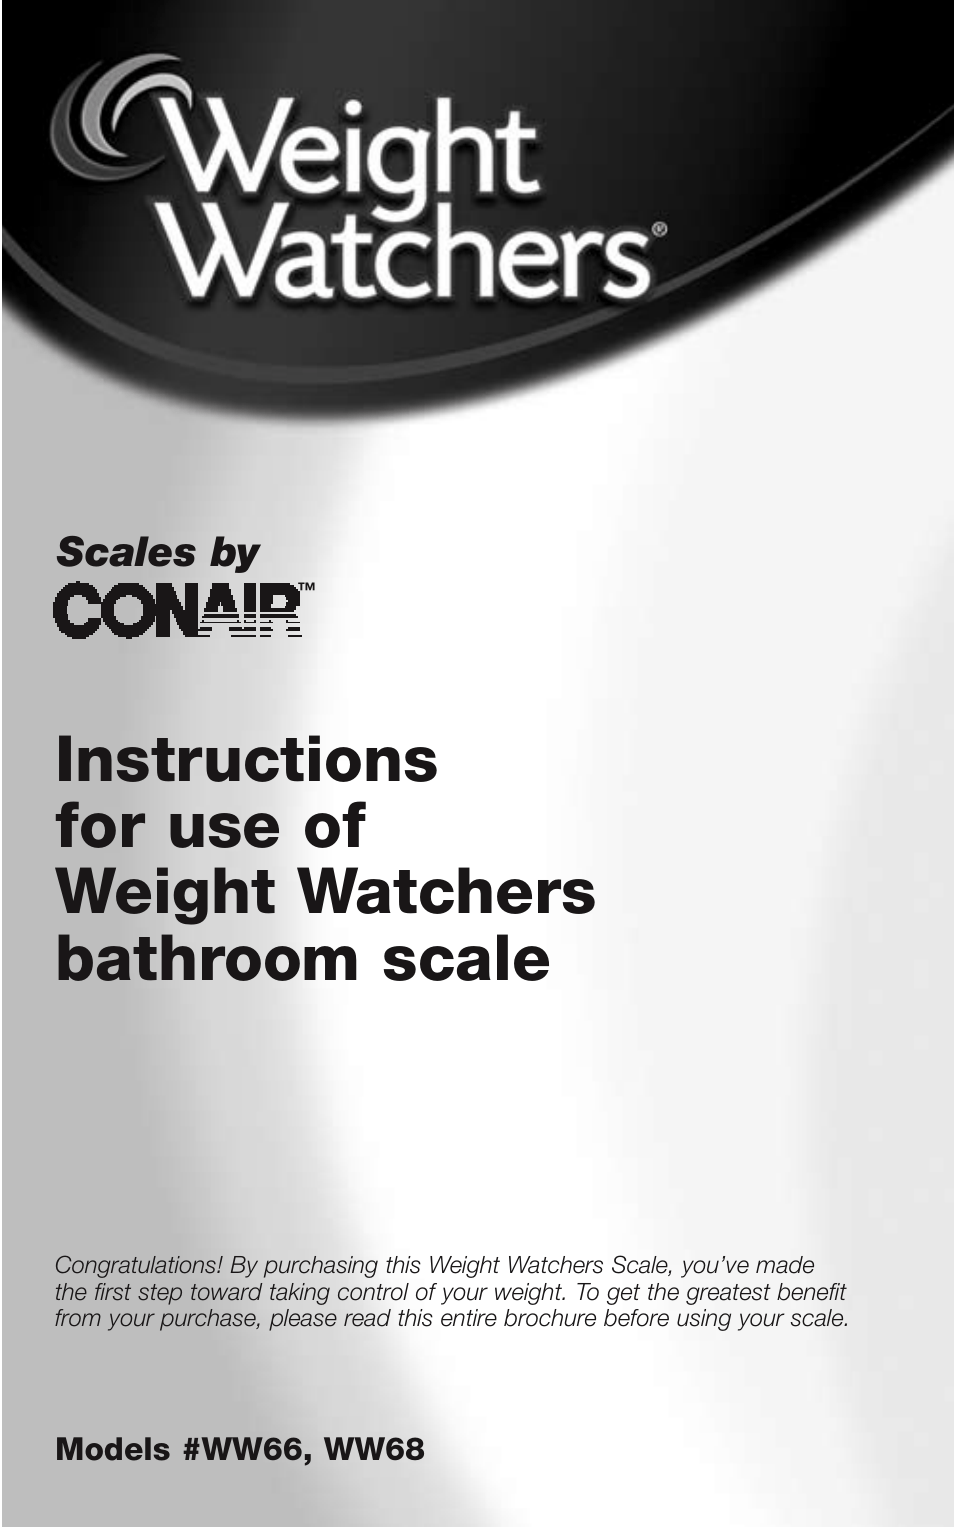 Conair WEIGHT WATCHERS BATHROOM SCALE WW66 User Manual